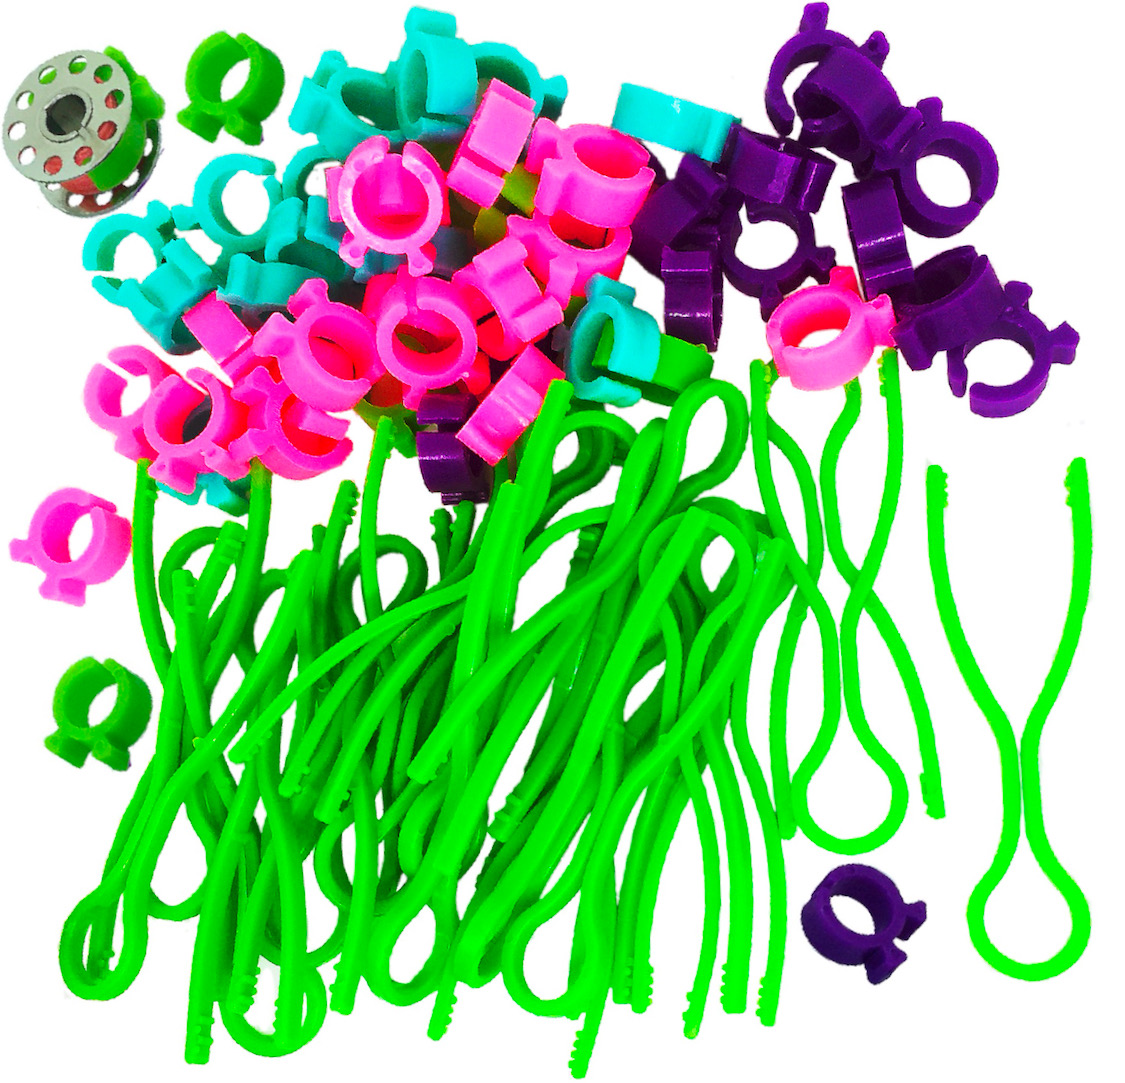 Tupalizy 5 Colors Plastic Bobbin Thread Holders Thread Buddies Bobbin Clips Clamps for Bobbins Embroidery Thread Spools Organizing Pairing Matching Quilting Sewing Machine Accessories 30PCS